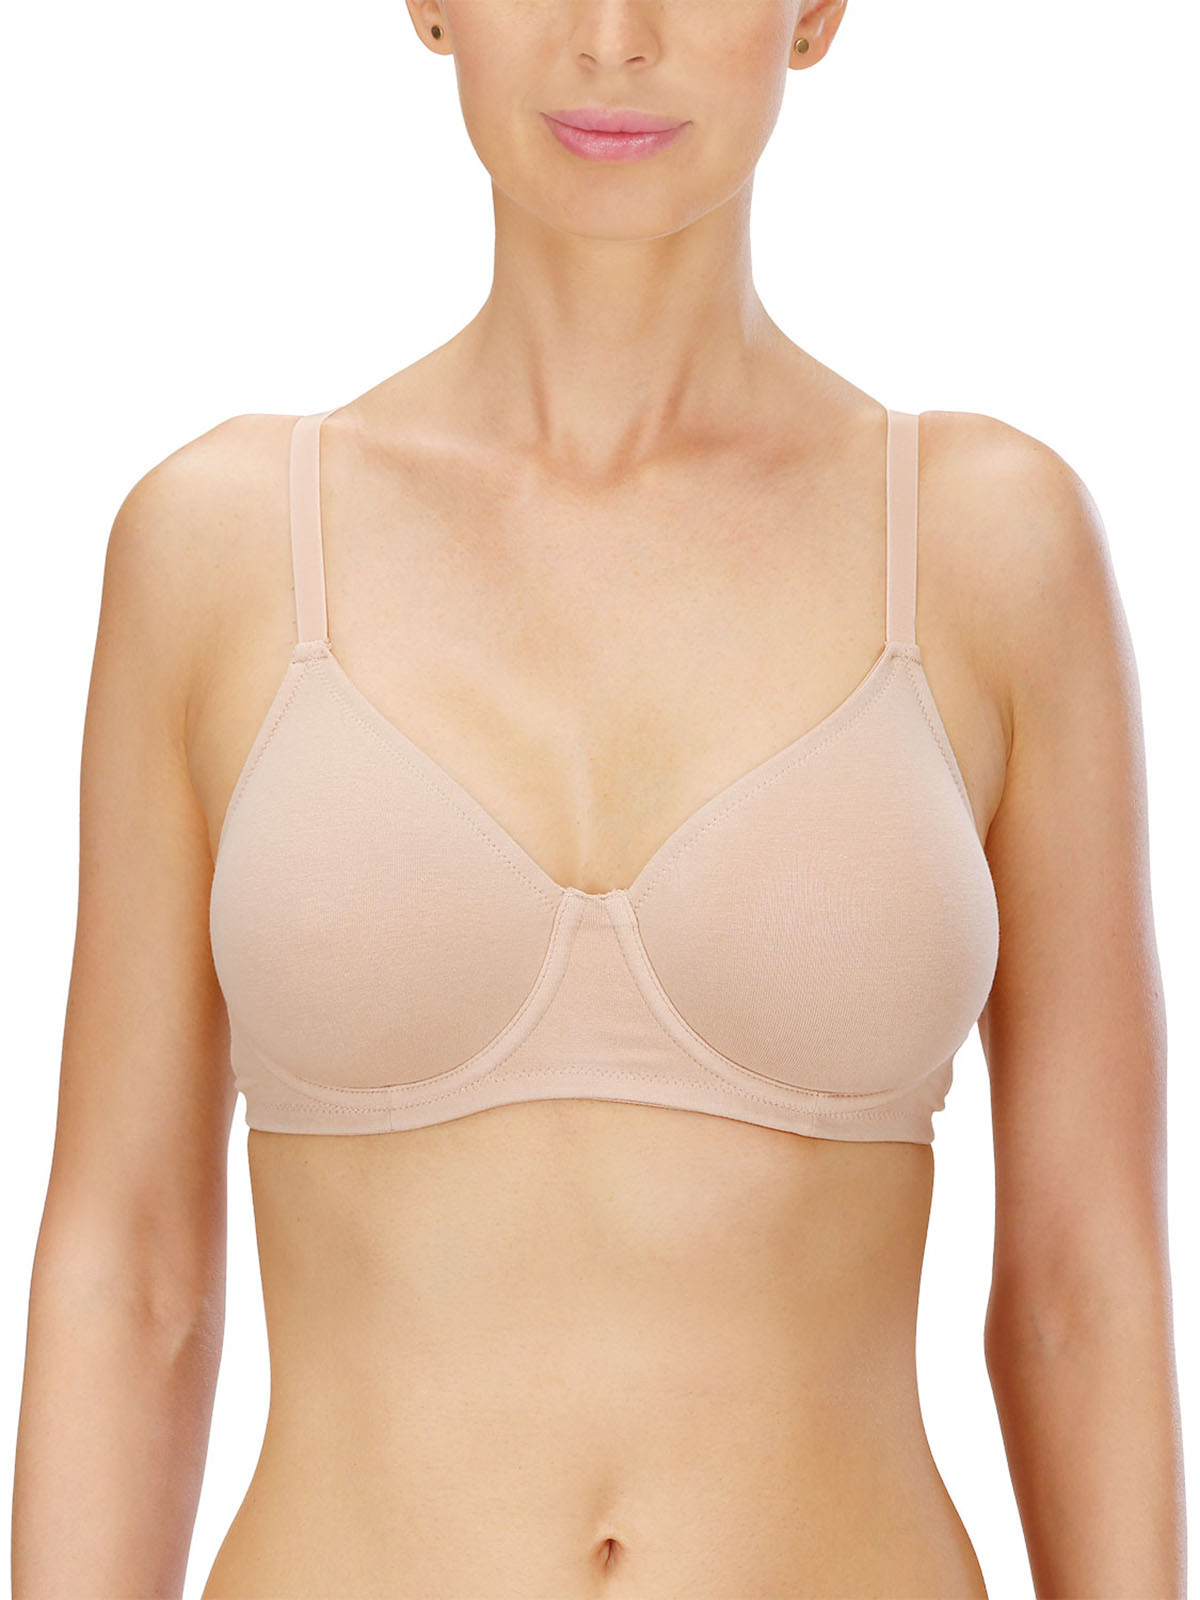 Organic Cotton Underwired Bra 7586 Size 34-42 Cup B-D